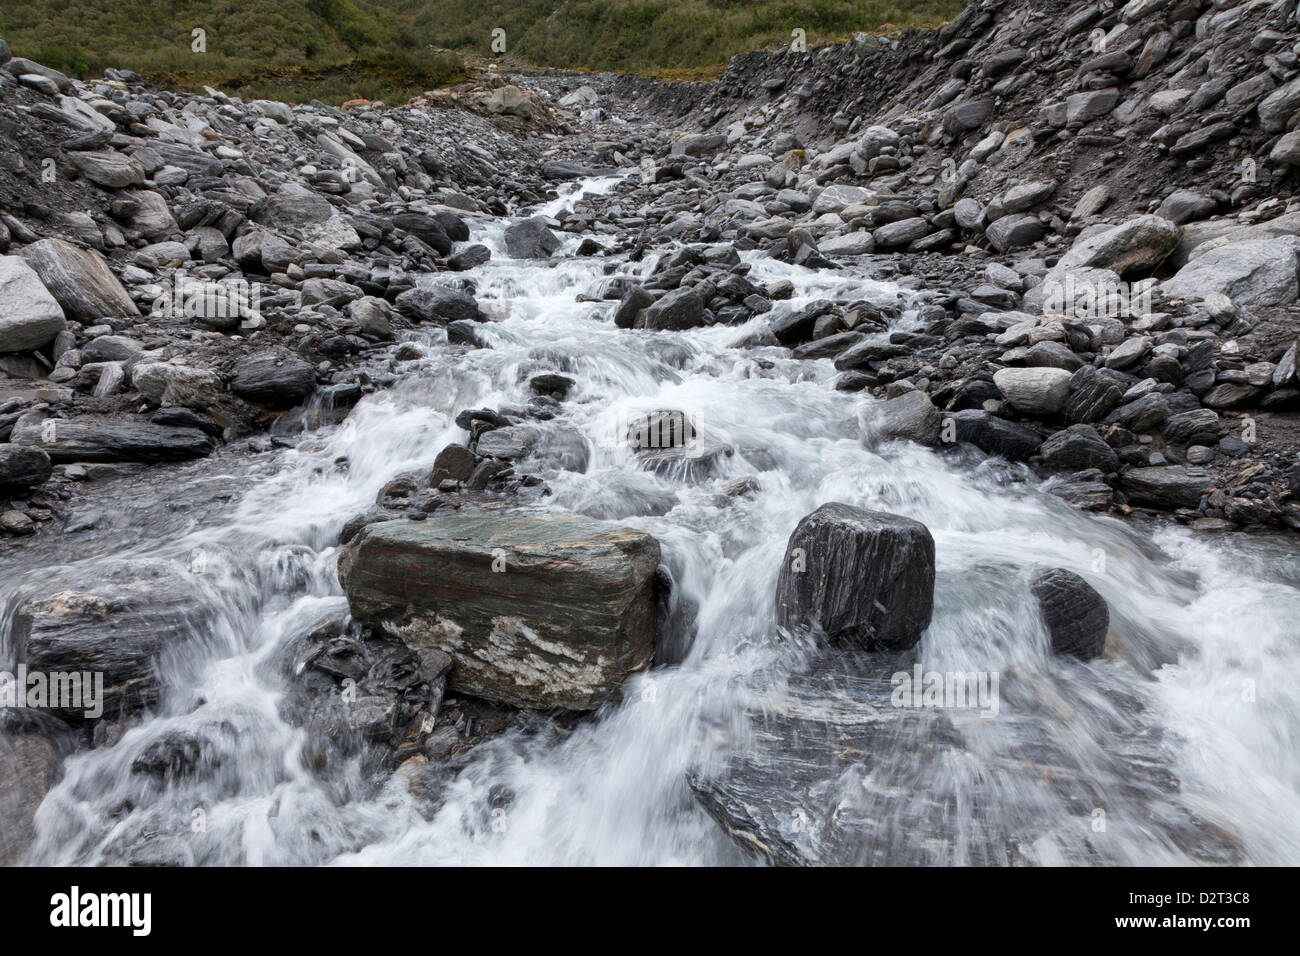 Water streaming from Fox Glacier, Southern Island, New Zealand - Stock Image